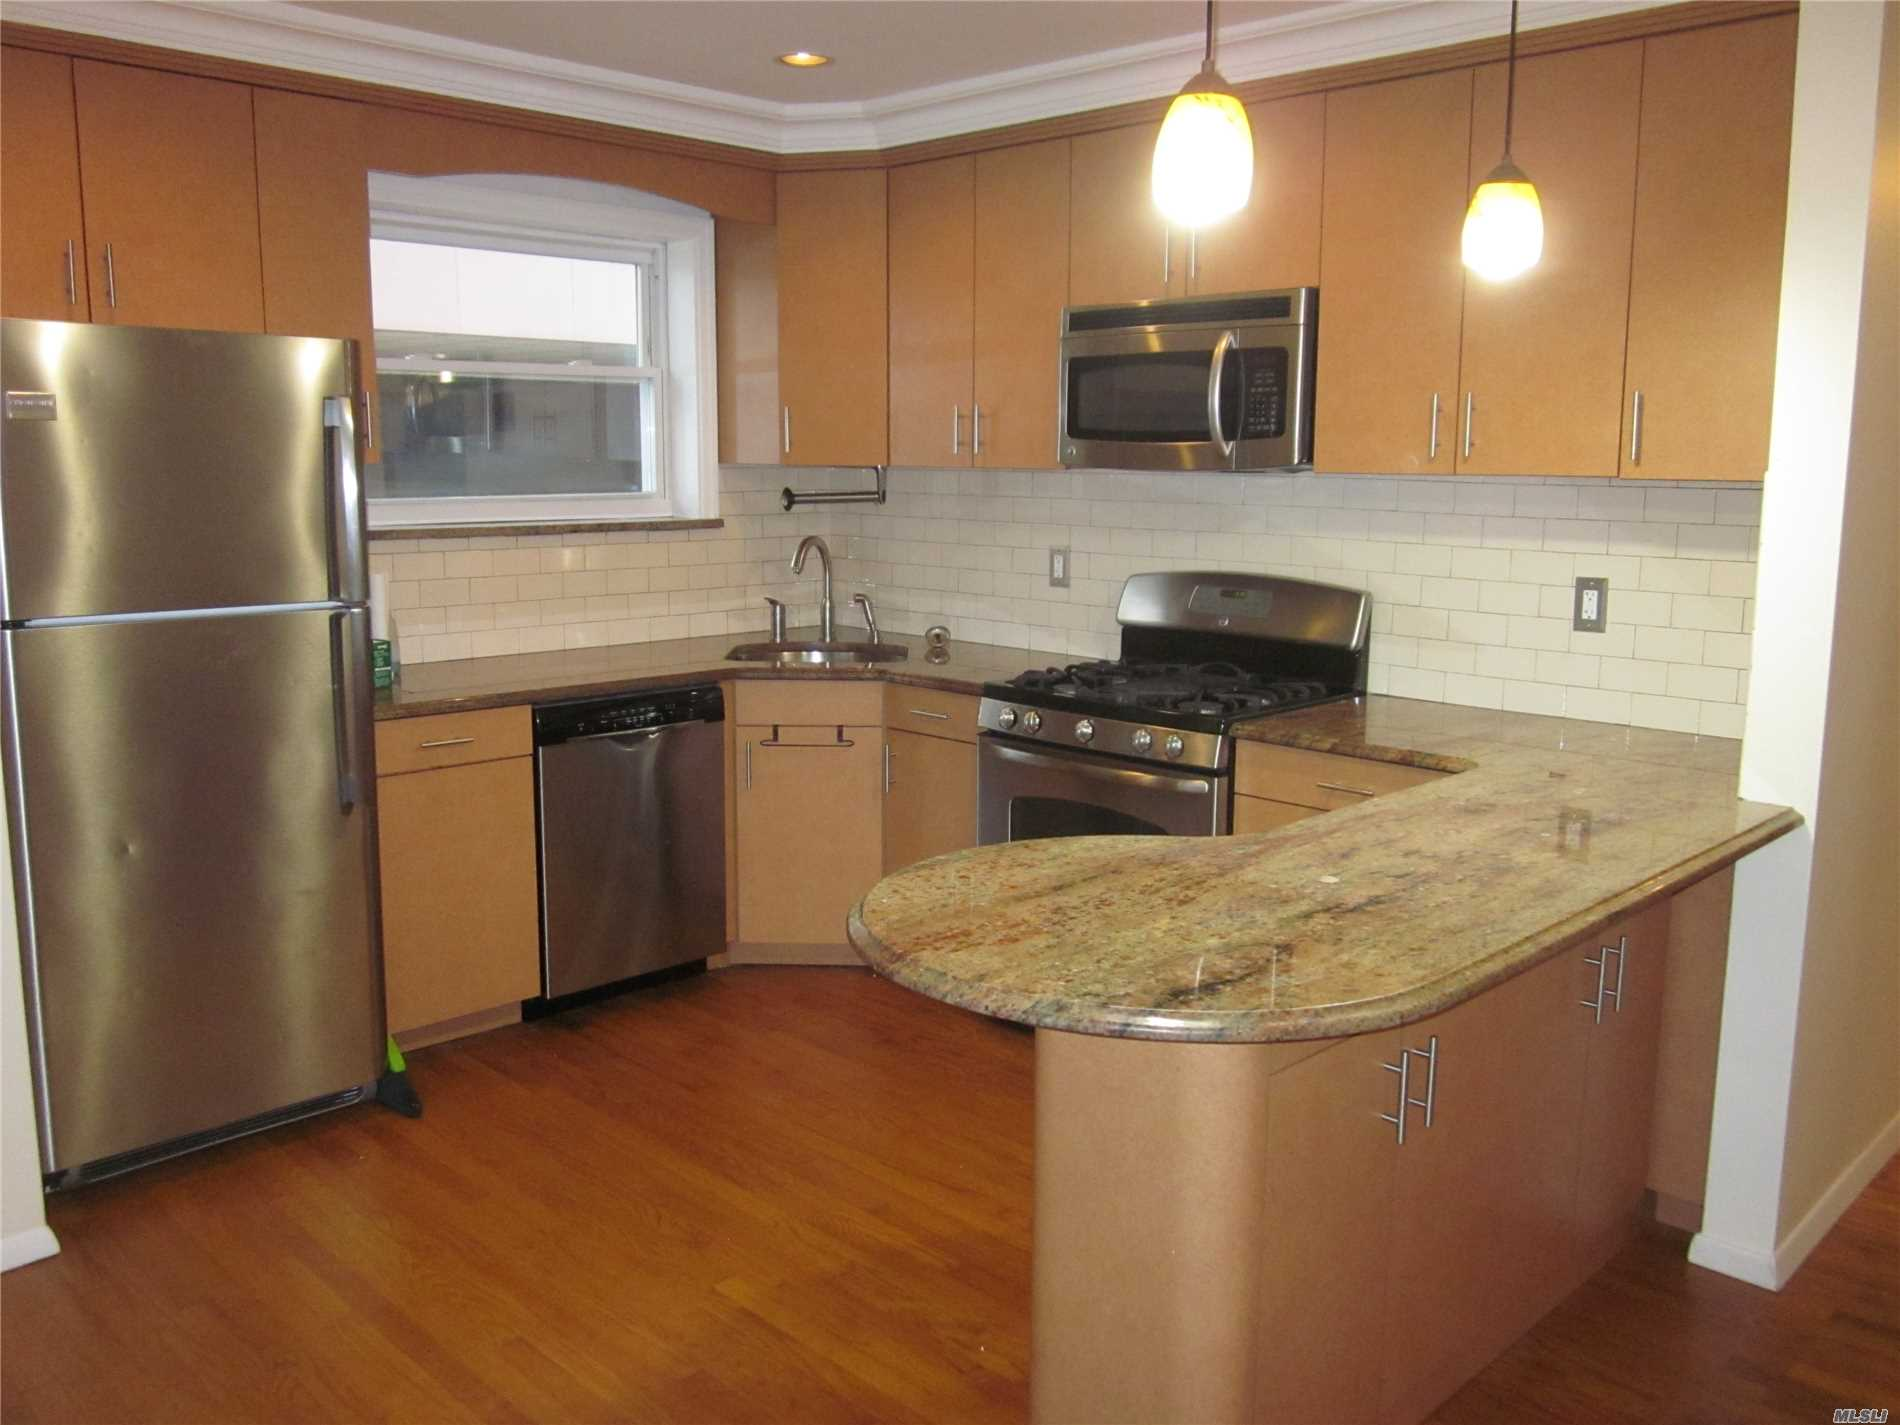 Open concept living room/dining room 3 bedroom 1 bath Apt near all major highways and NYC buses. The Apt features all hardwood floors through out with updated stainless steel kitchen appliances only water is included.